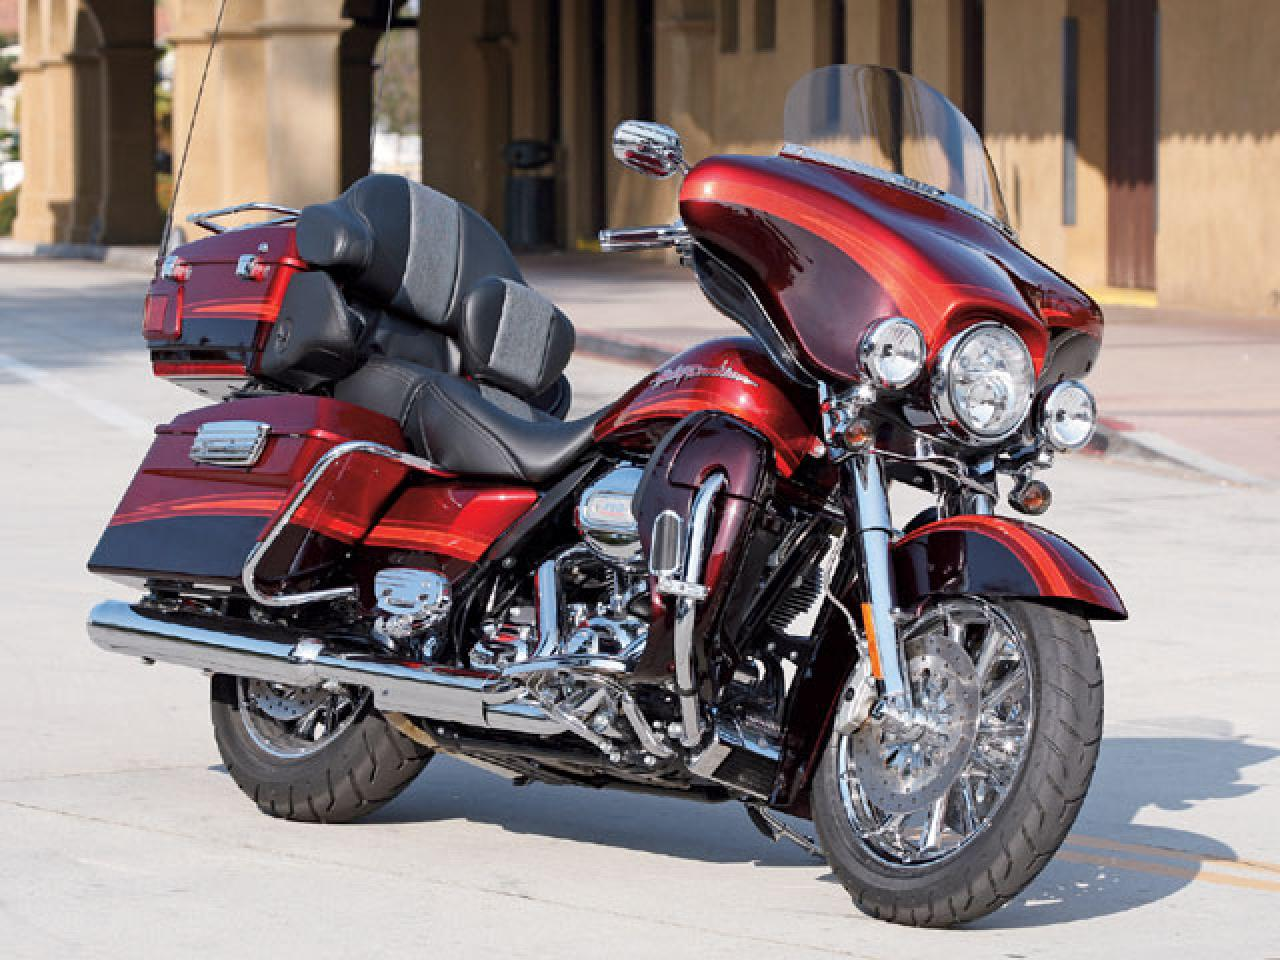 2009 harley davidson flhtcuse4 cvo ultra classic electra glide moto zombdrive com. Black Bedroom Furniture Sets. Home Design Ideas